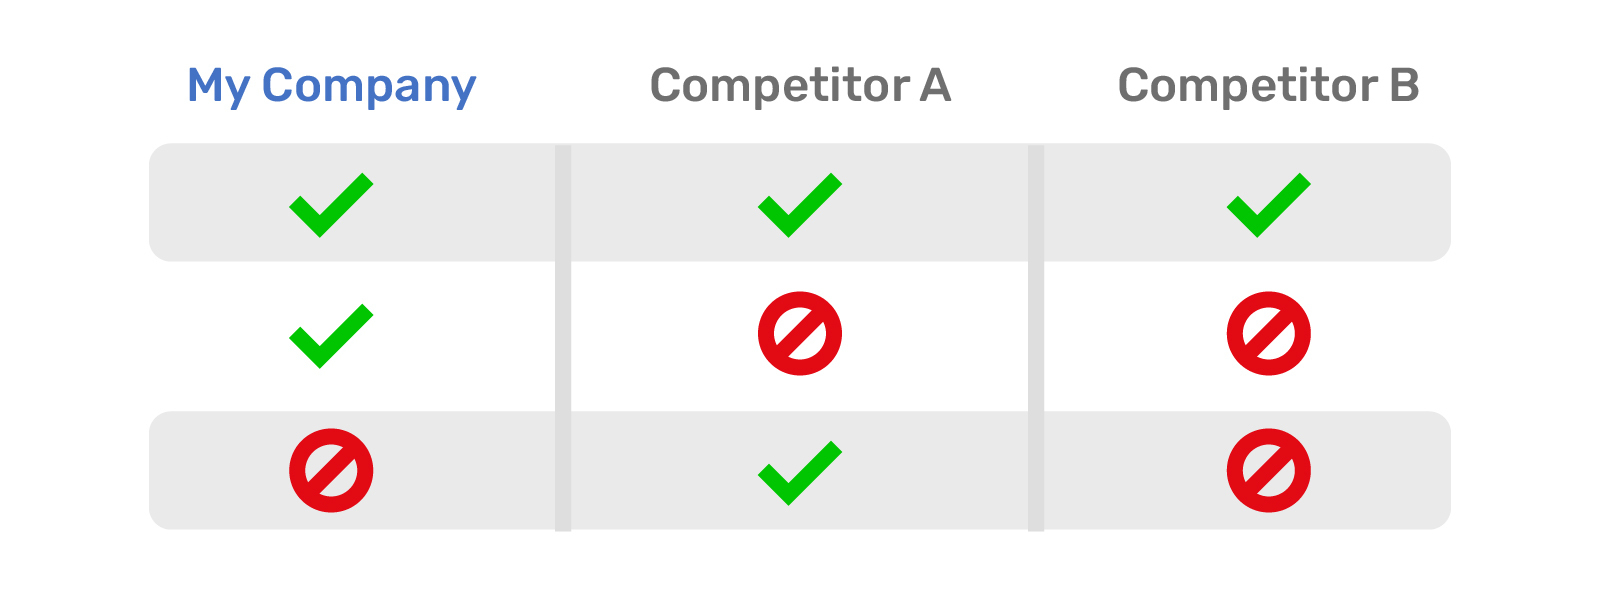 Why You Should Perform Competitive Analysis and How to Do It - Comparison Checklist